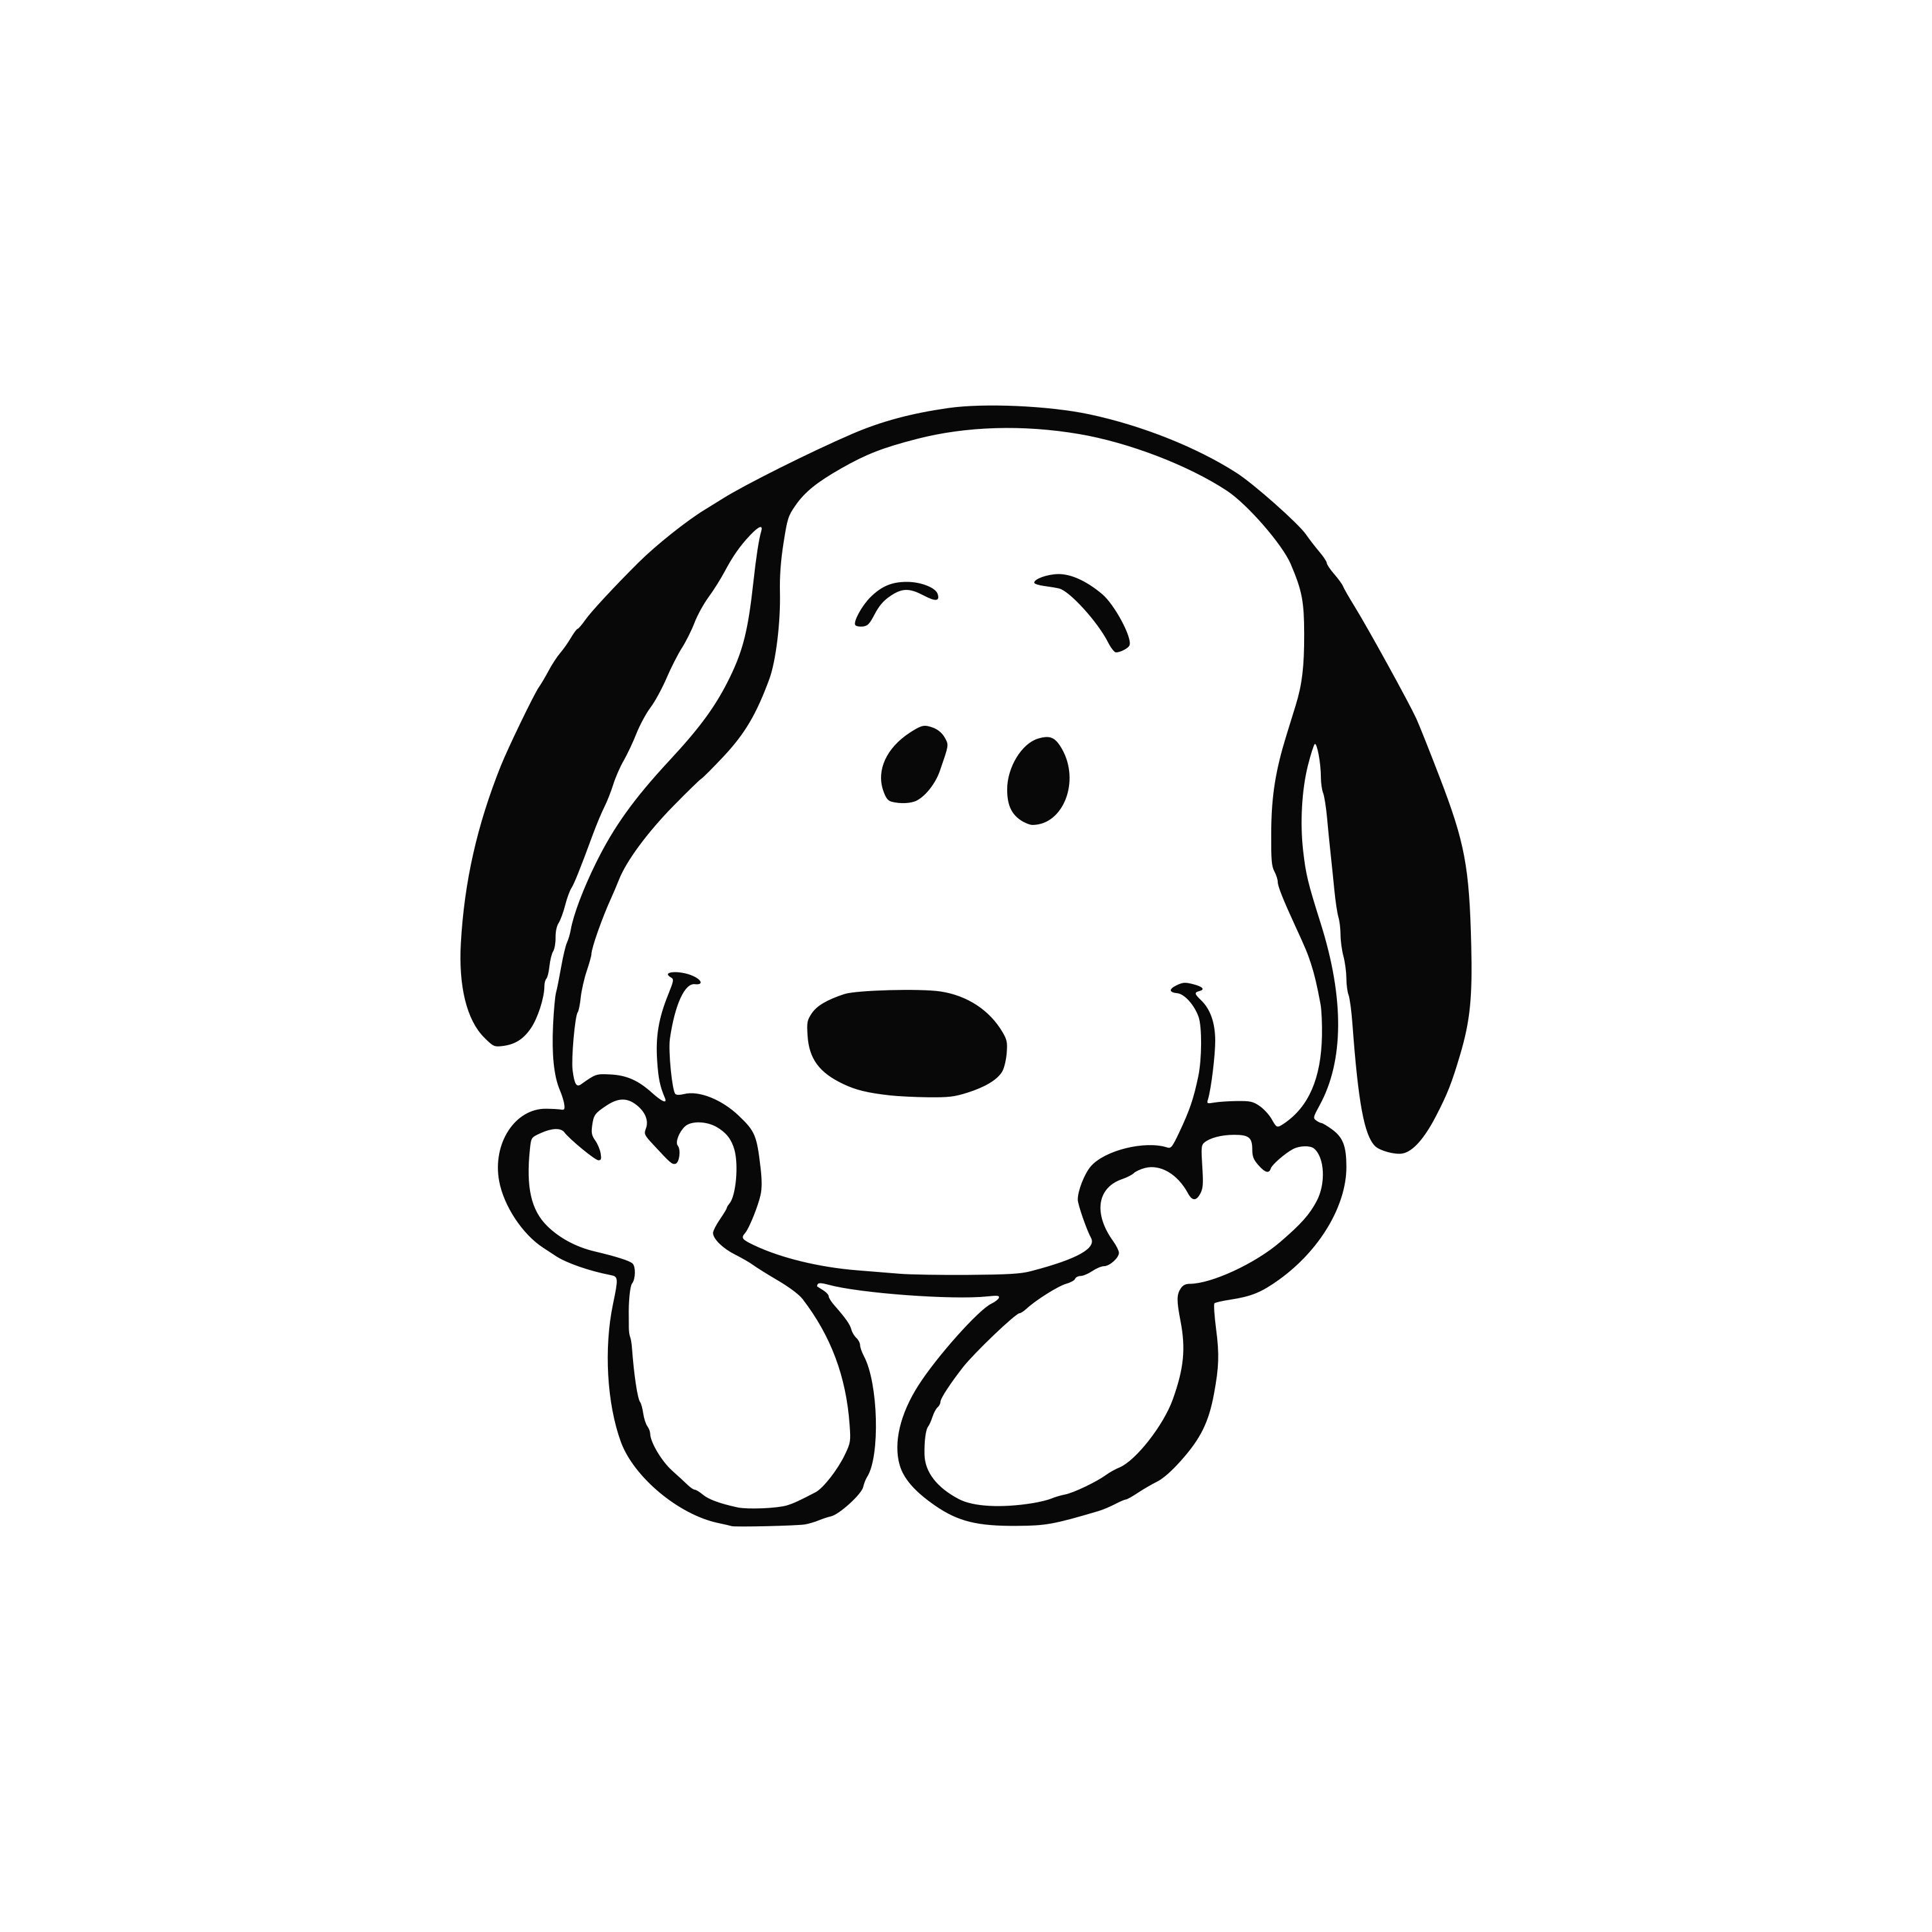 Snoopy Svg Cartoon Svg Cartoon Dog Svg Files For Cricut Silhouette Vector File Svg Png Eps Dxf In 2020 Snoopy Wallpaper Snoopy Tattoo Snoopy